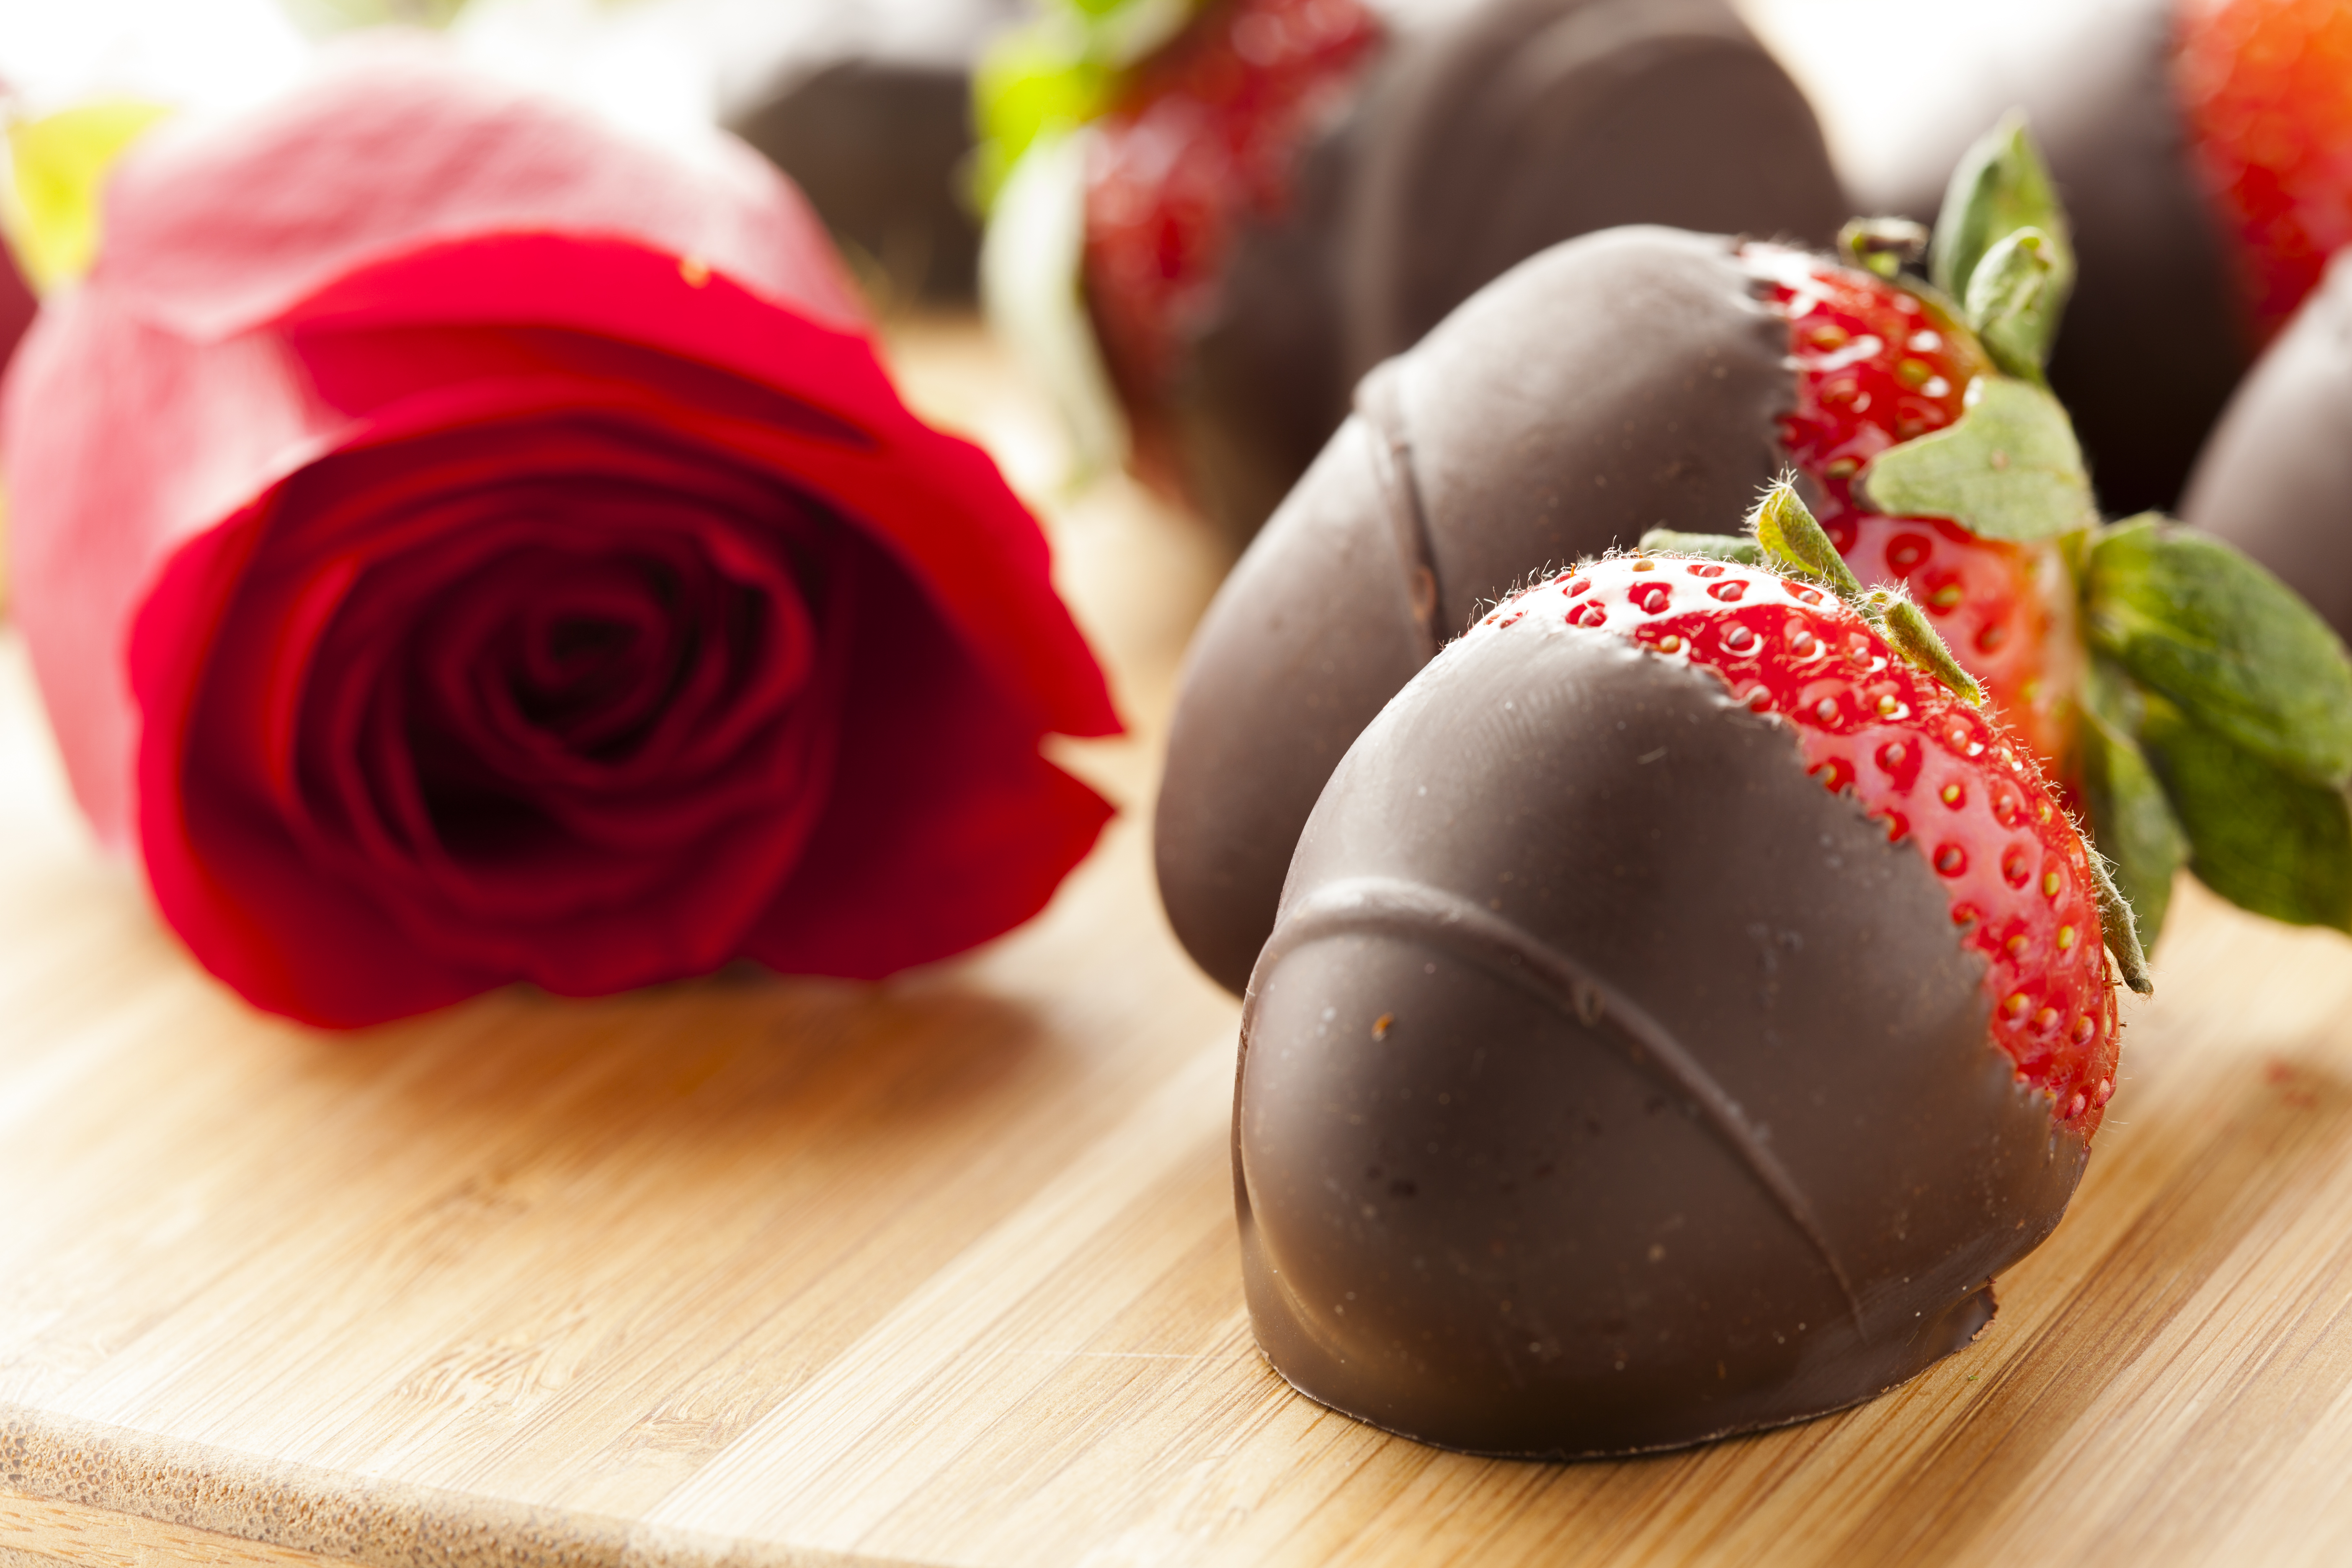 Dairy Free Chocolate Dipped Strawberries